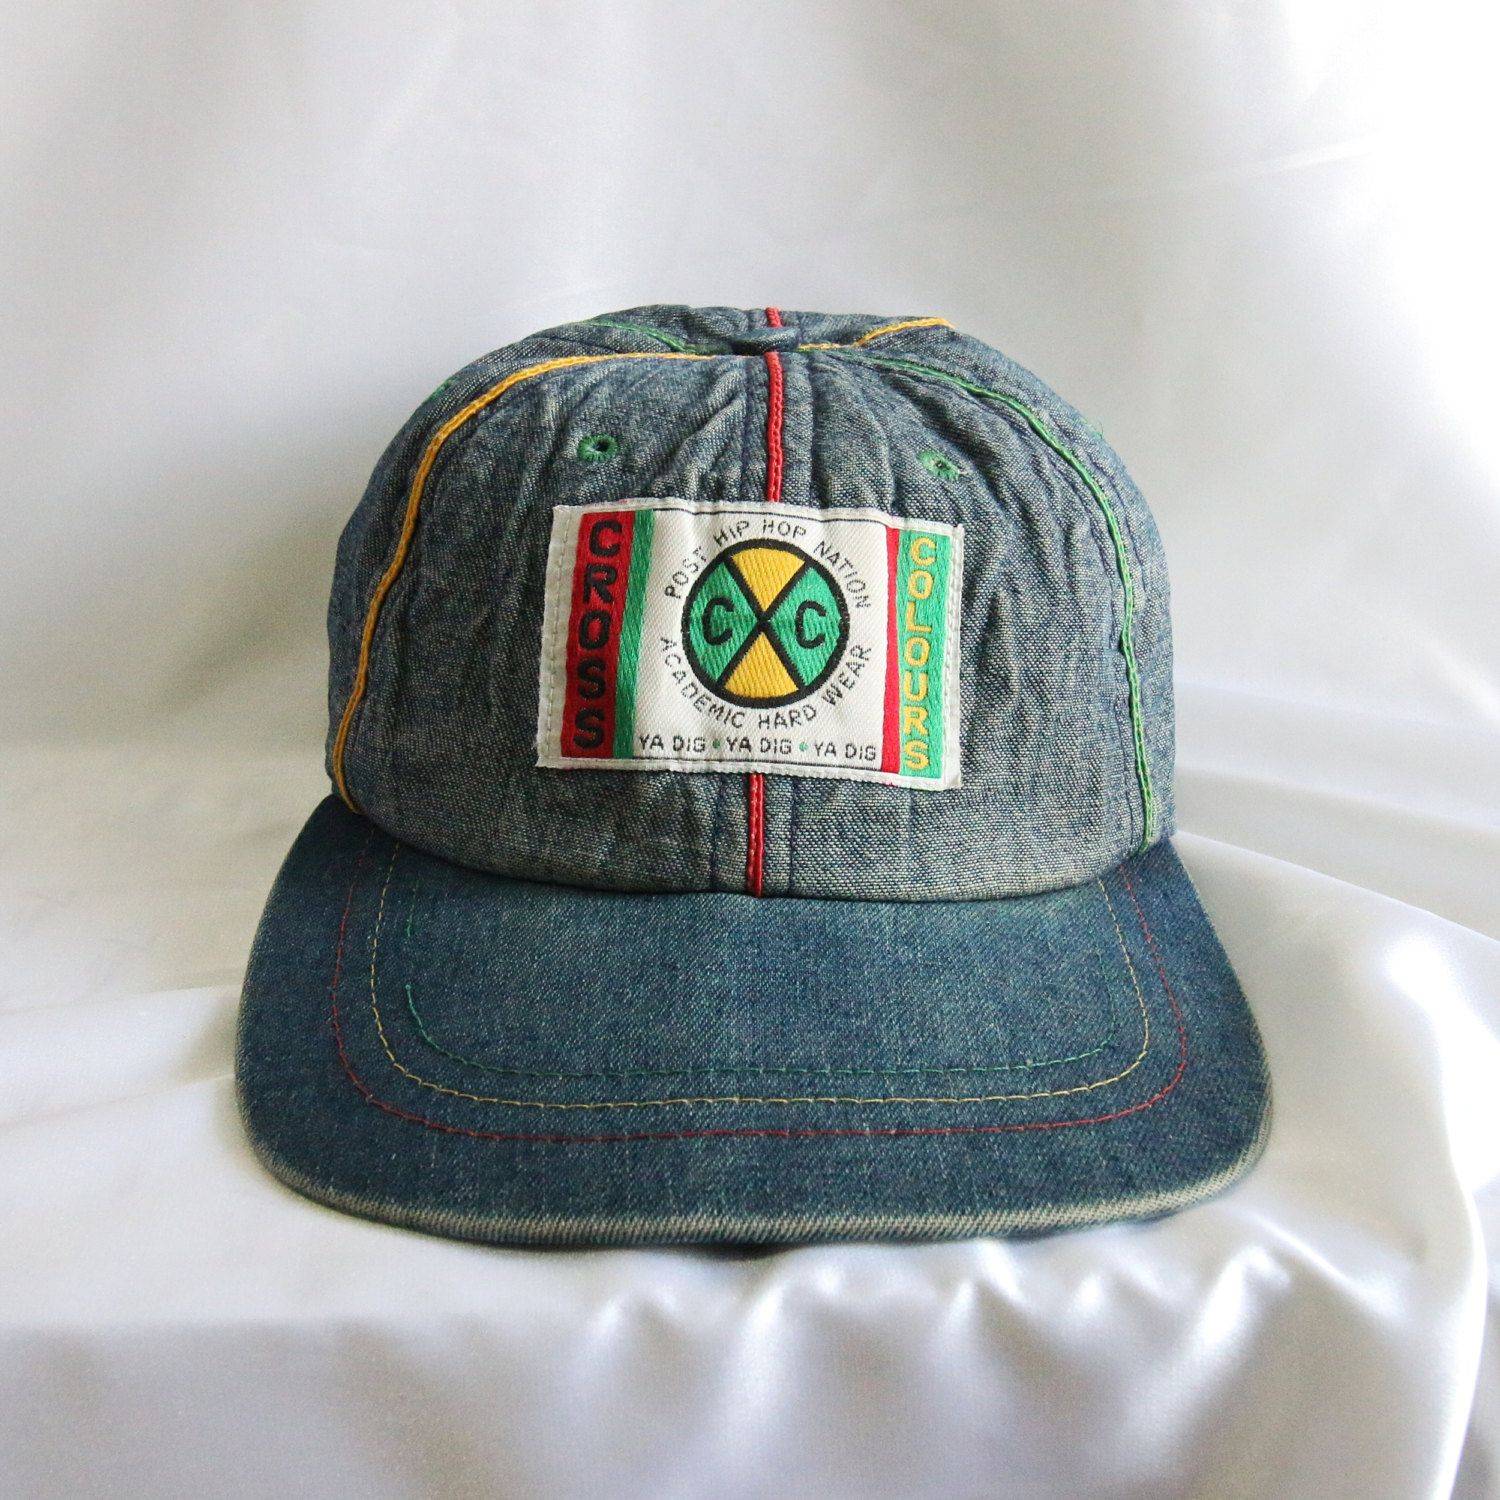 Vintage Cross Colours Ya Dig 90s USA denim Original Snapback Cap Hat Spike  Lee X Hip Hop Rap RARE by Vtg90s on Etsy  crosscolours 00e11670174